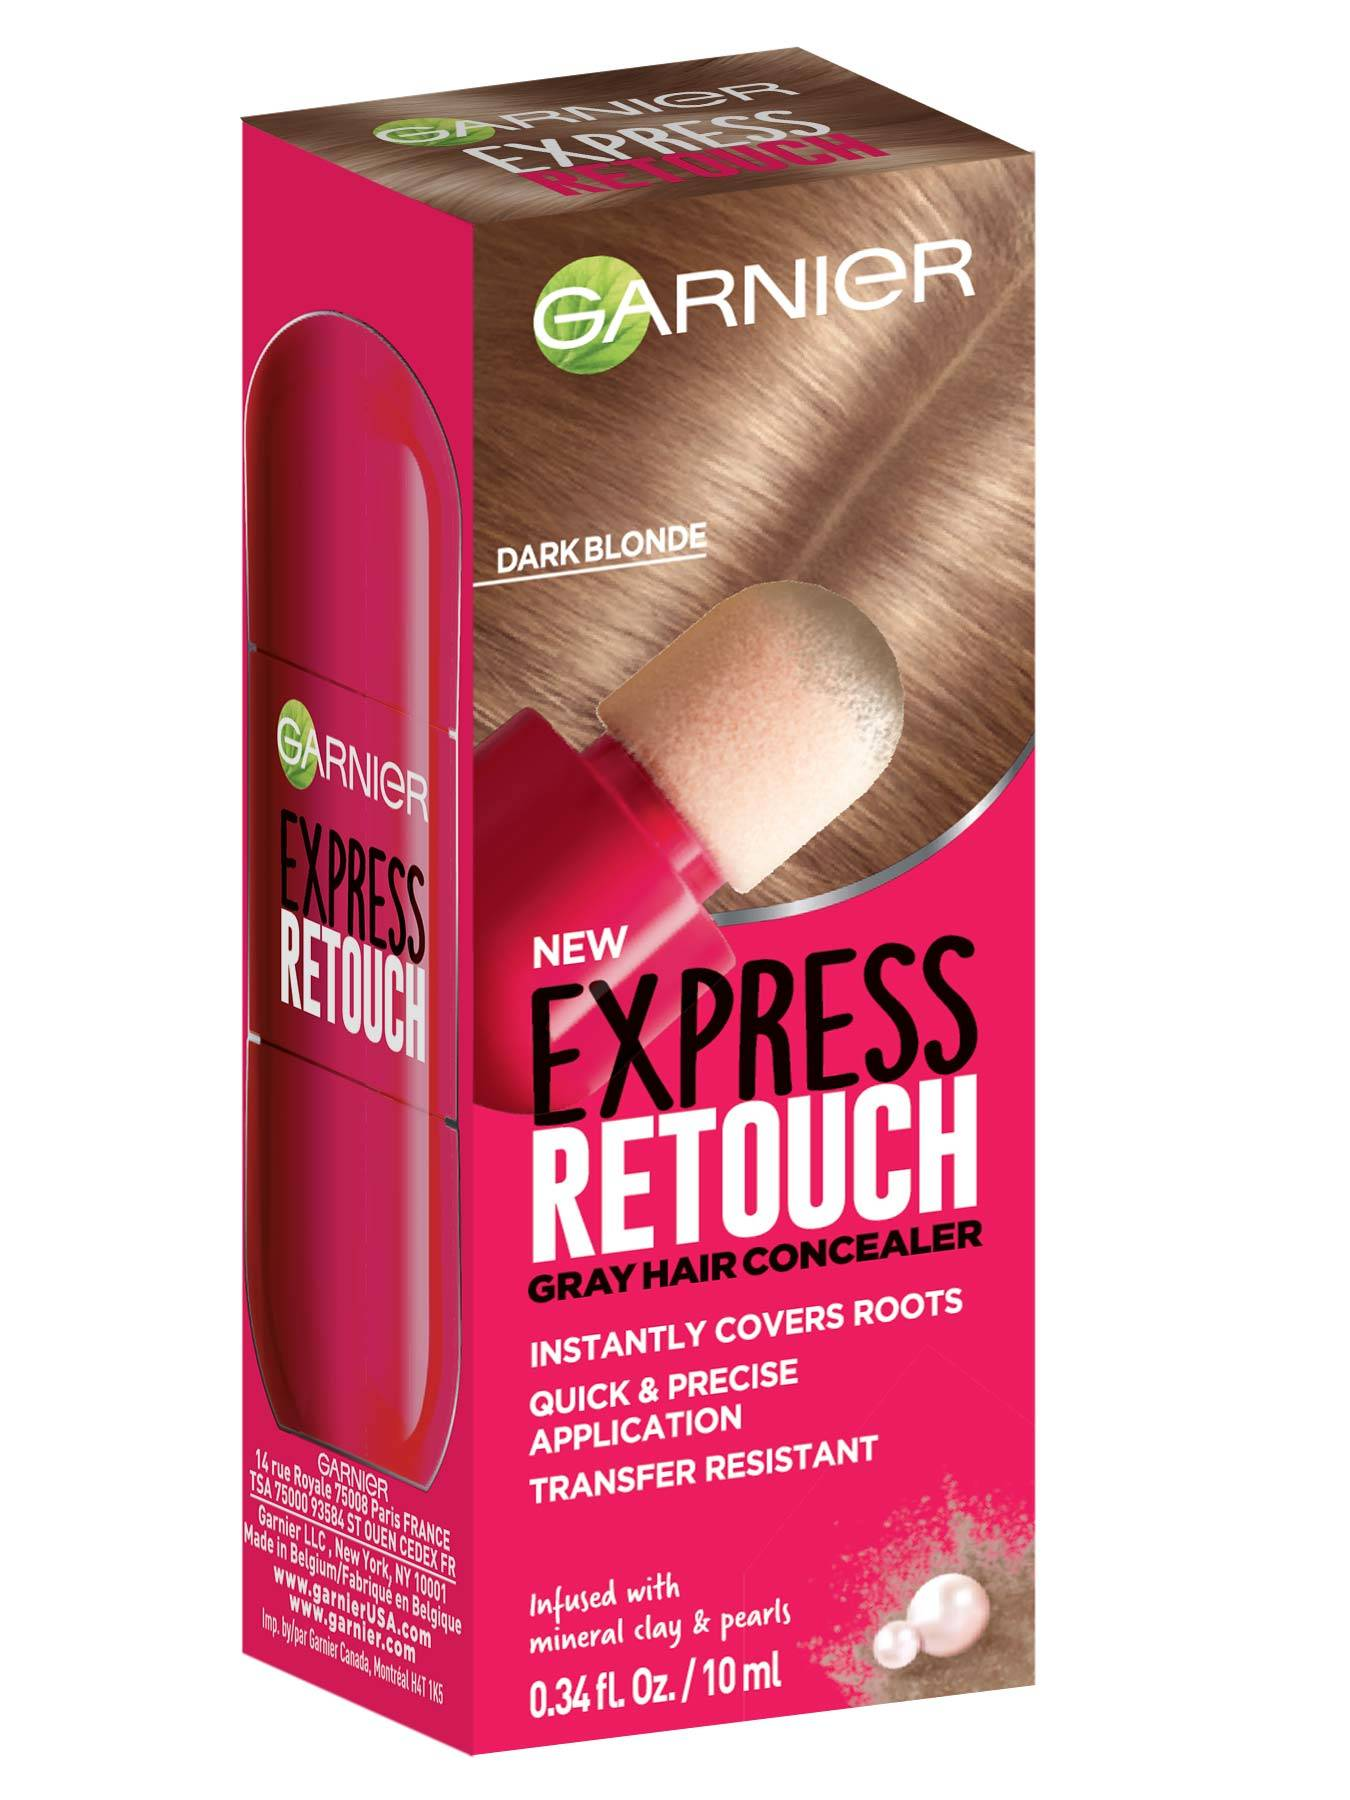 Express Retouch Dark Blonde Front packshot - Temporary Root Touchup